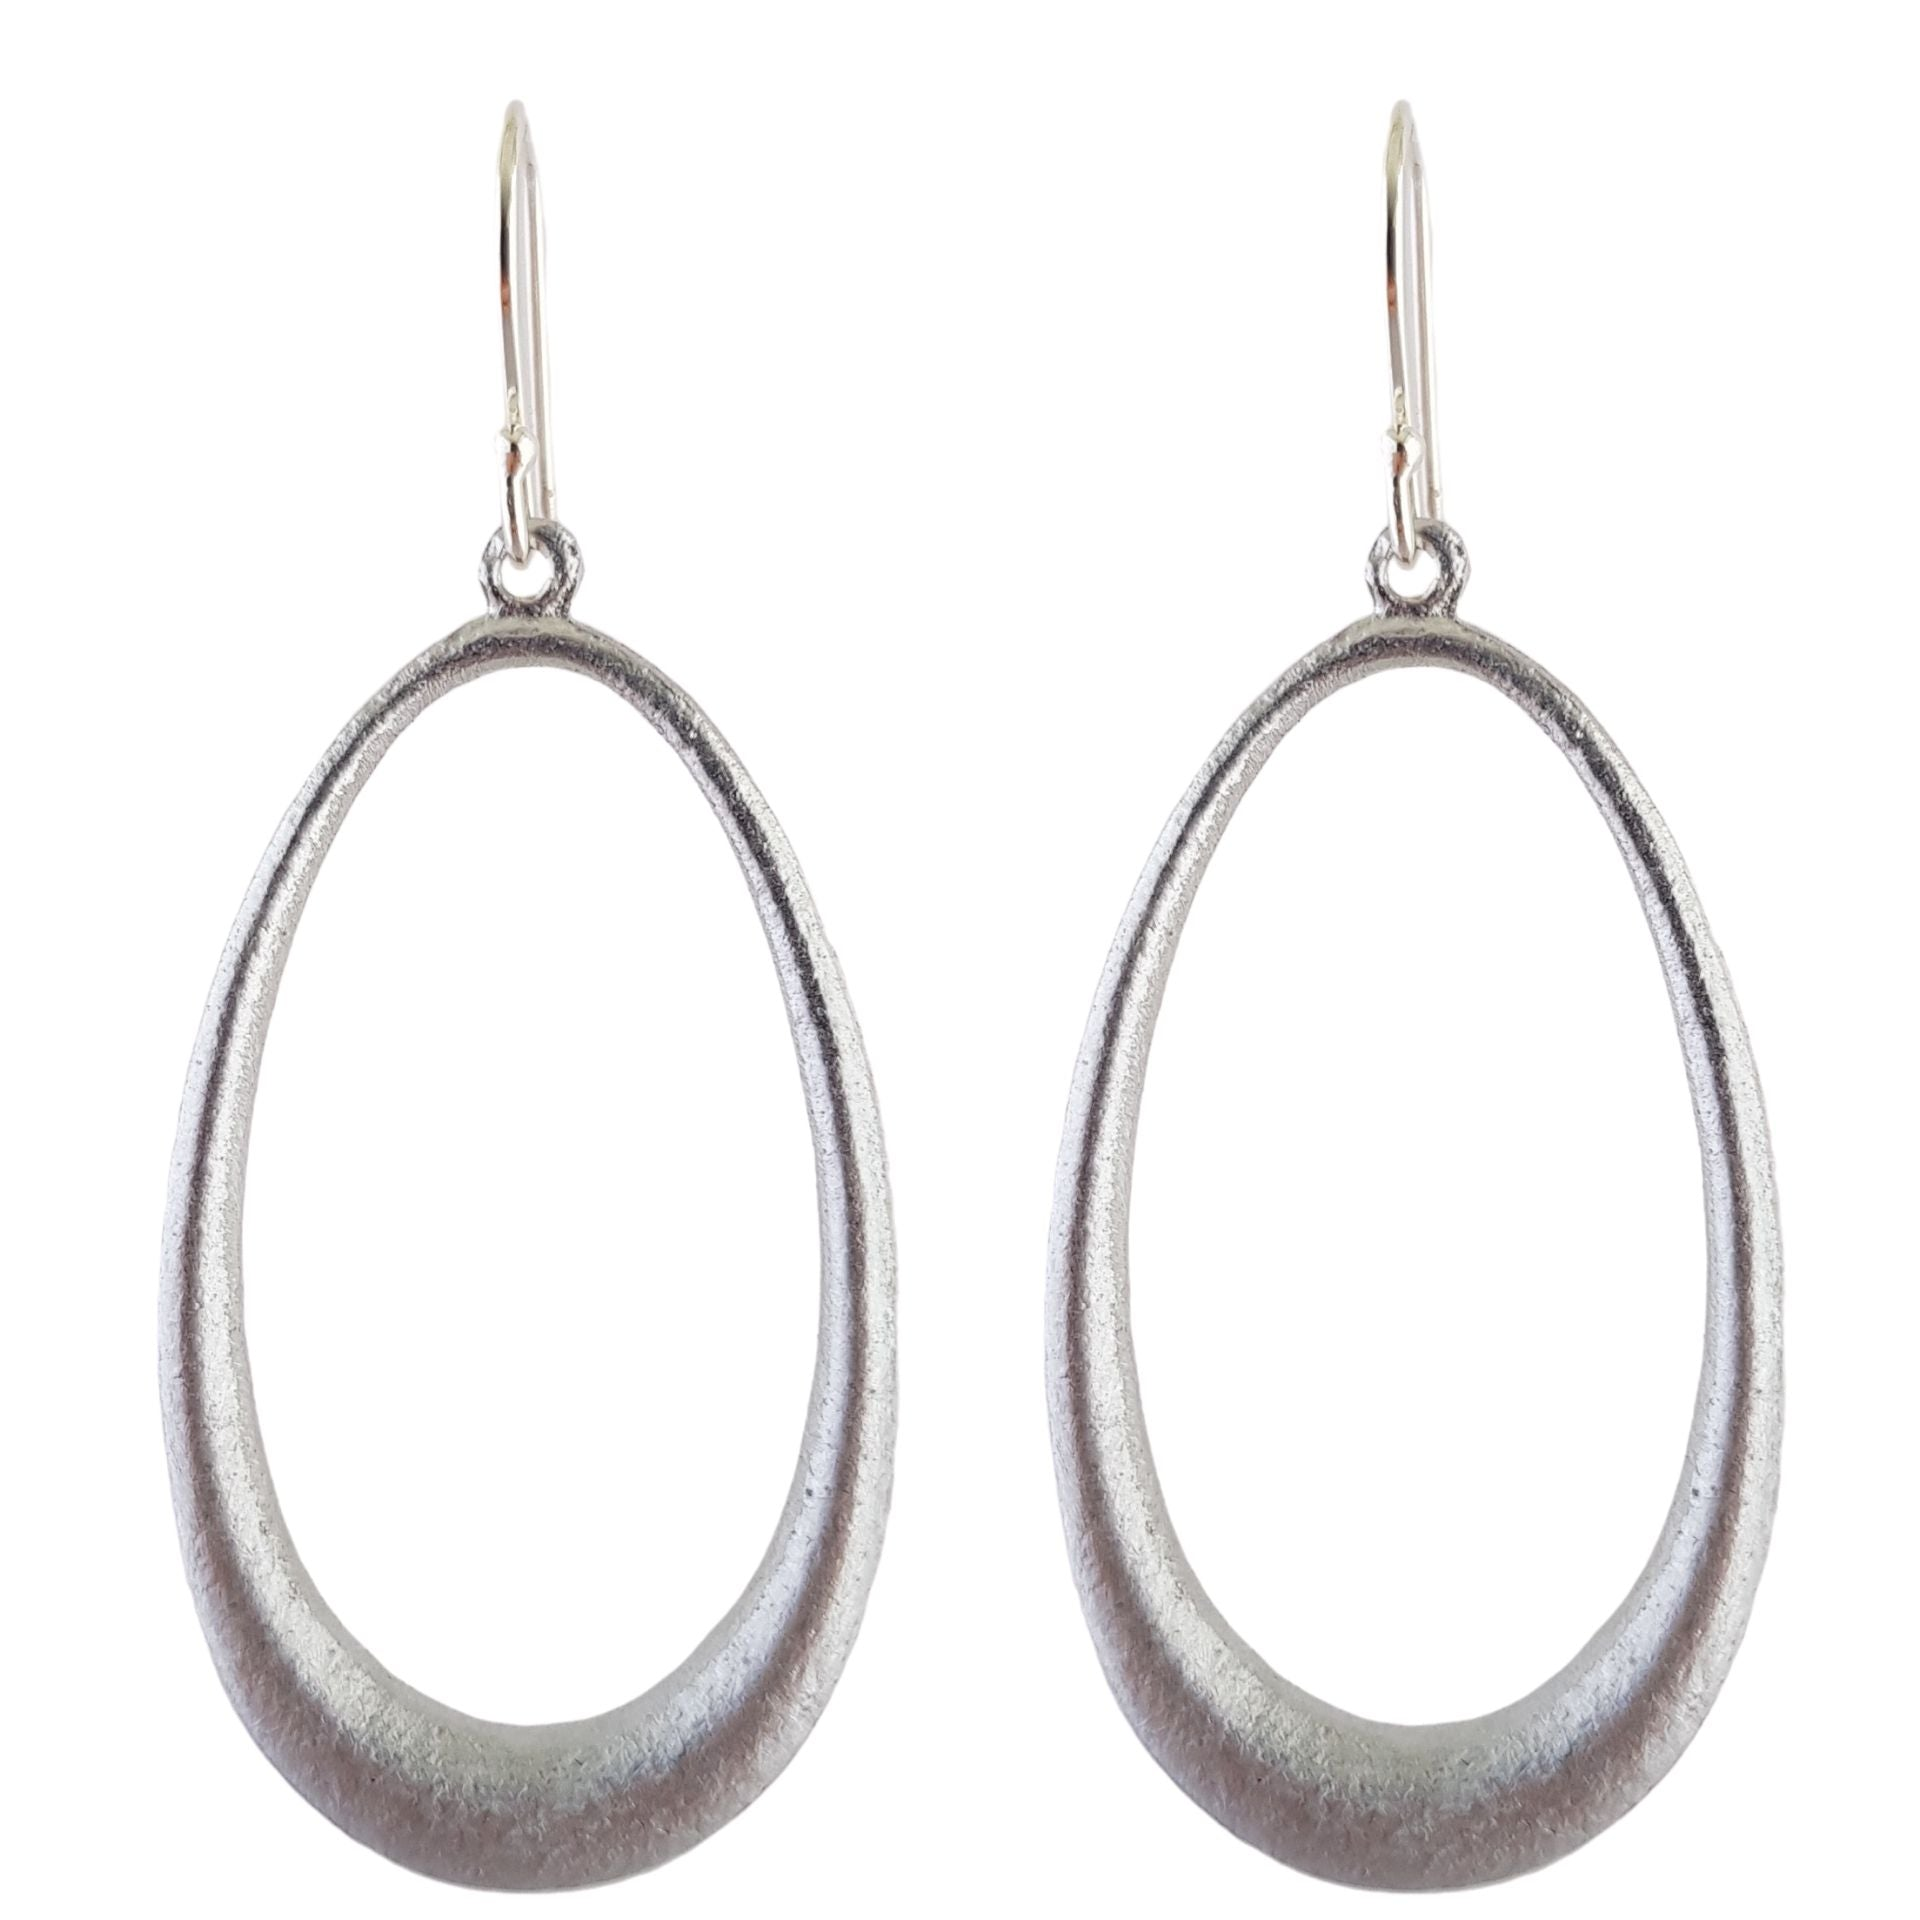 LOVEbomb Long Hoop Earrings on Sterling Silver Hooks